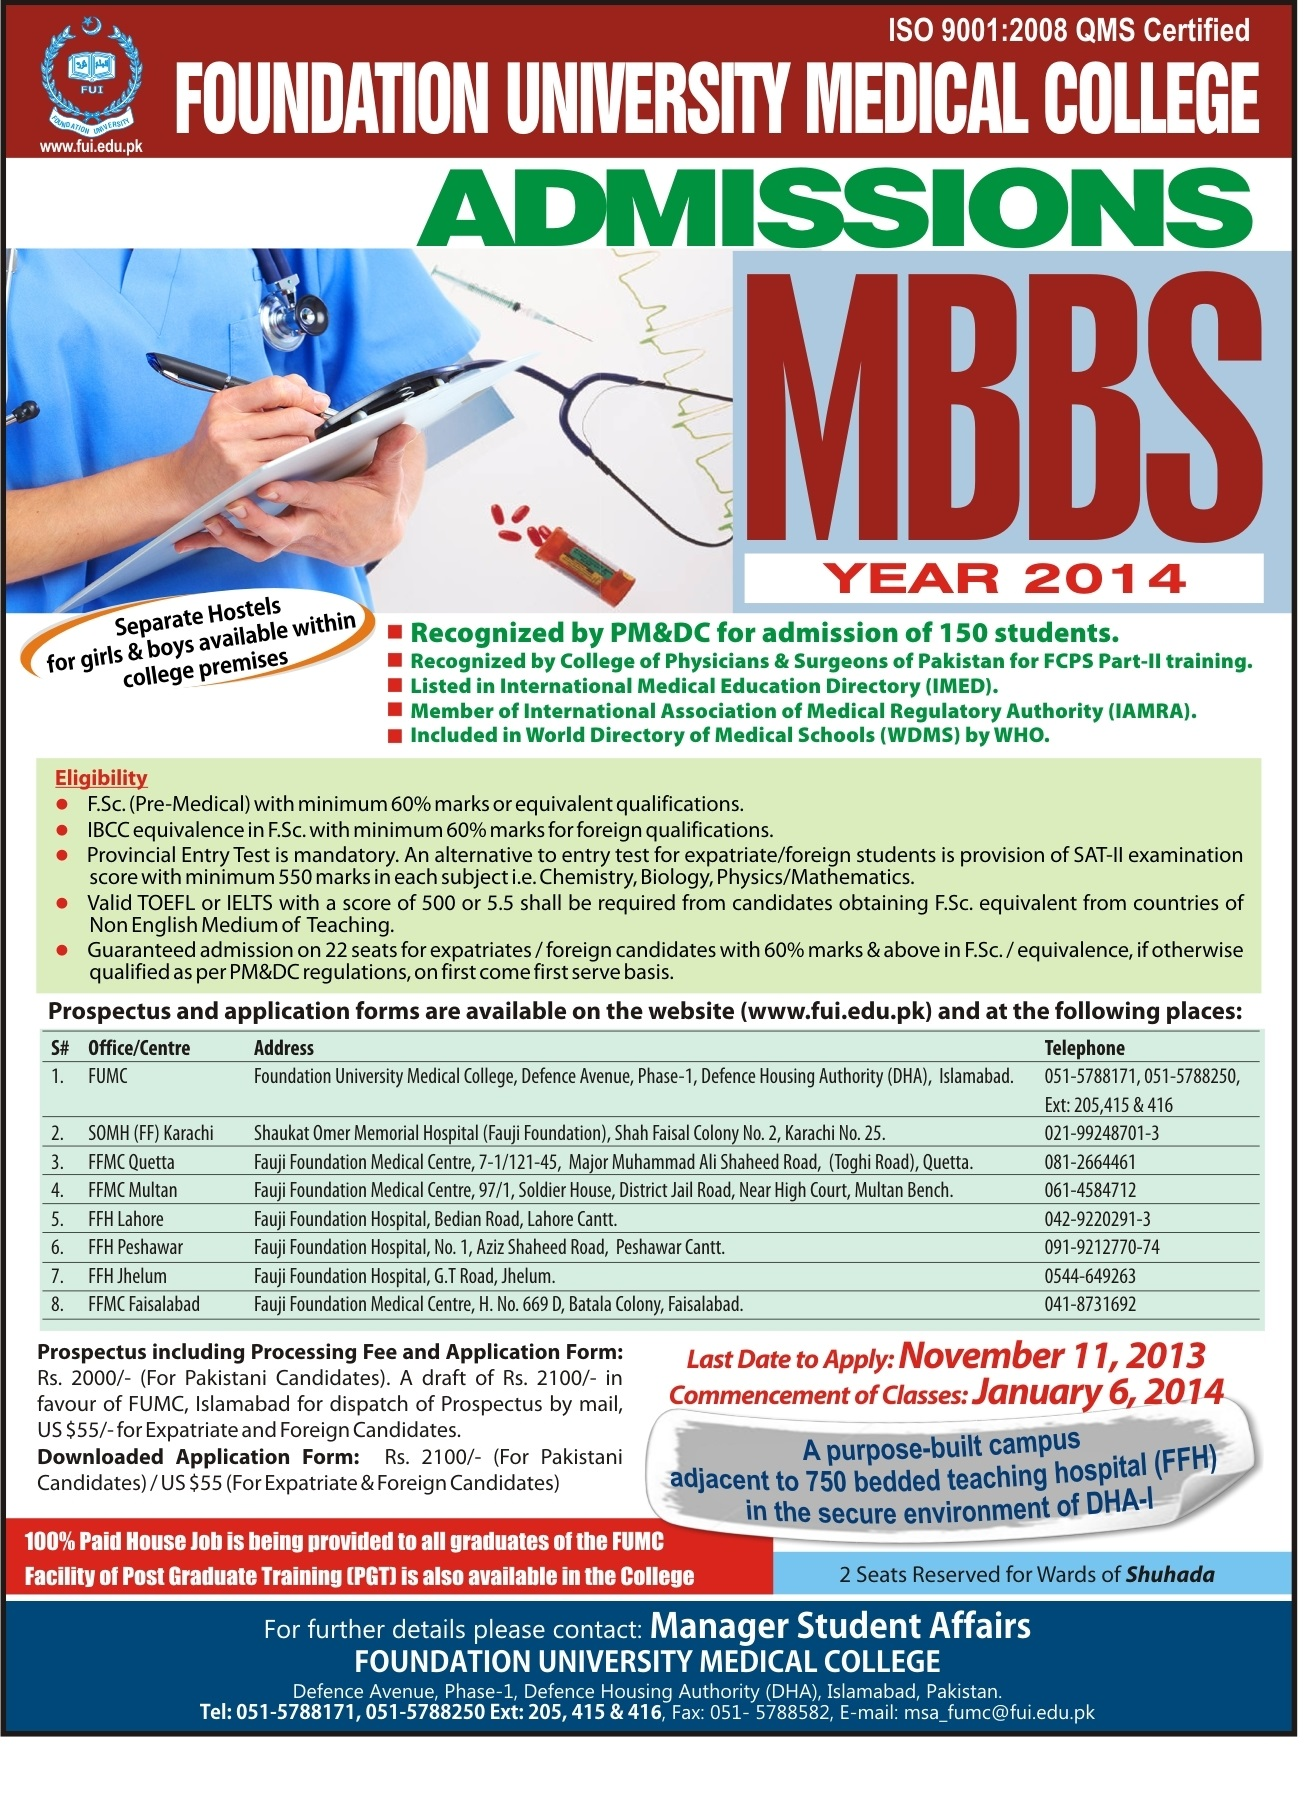 Foundation University Medical College Islamabad Admission Notice 2013 for Bachelor of Medicine, Bachelor of Surgery (MBBS)